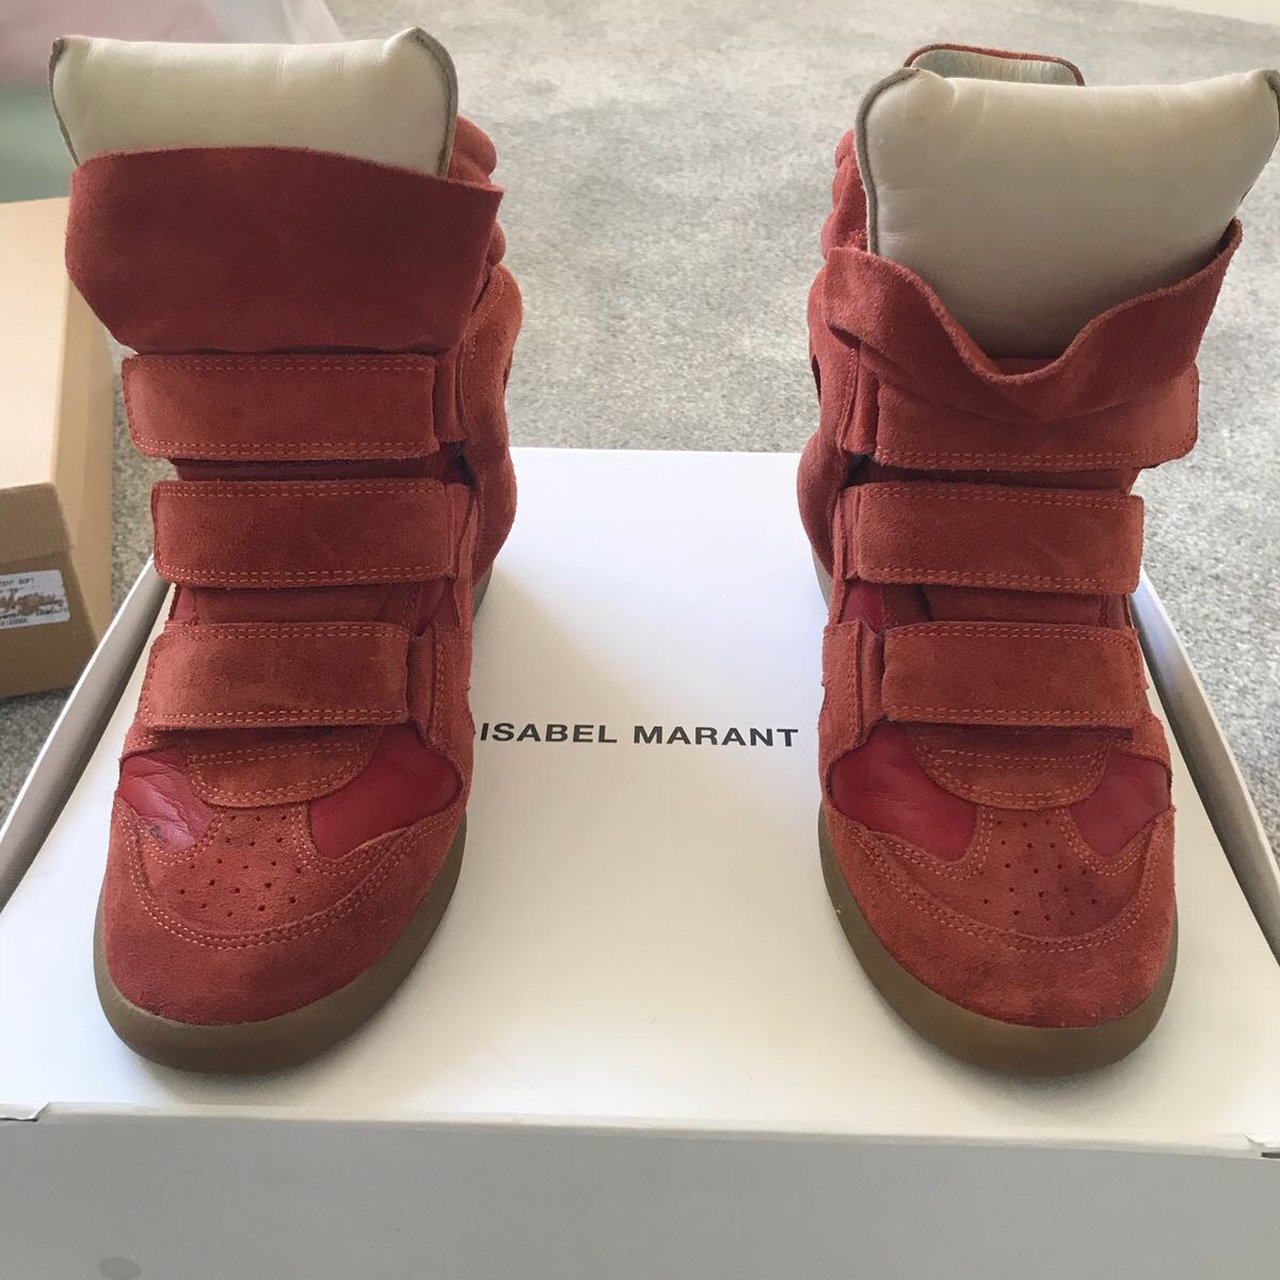 354f937b1a @marnie_10. 7 months ago. Liverpool, United Kingdom. Authentic red Isabel  Marant High Top sneakers.